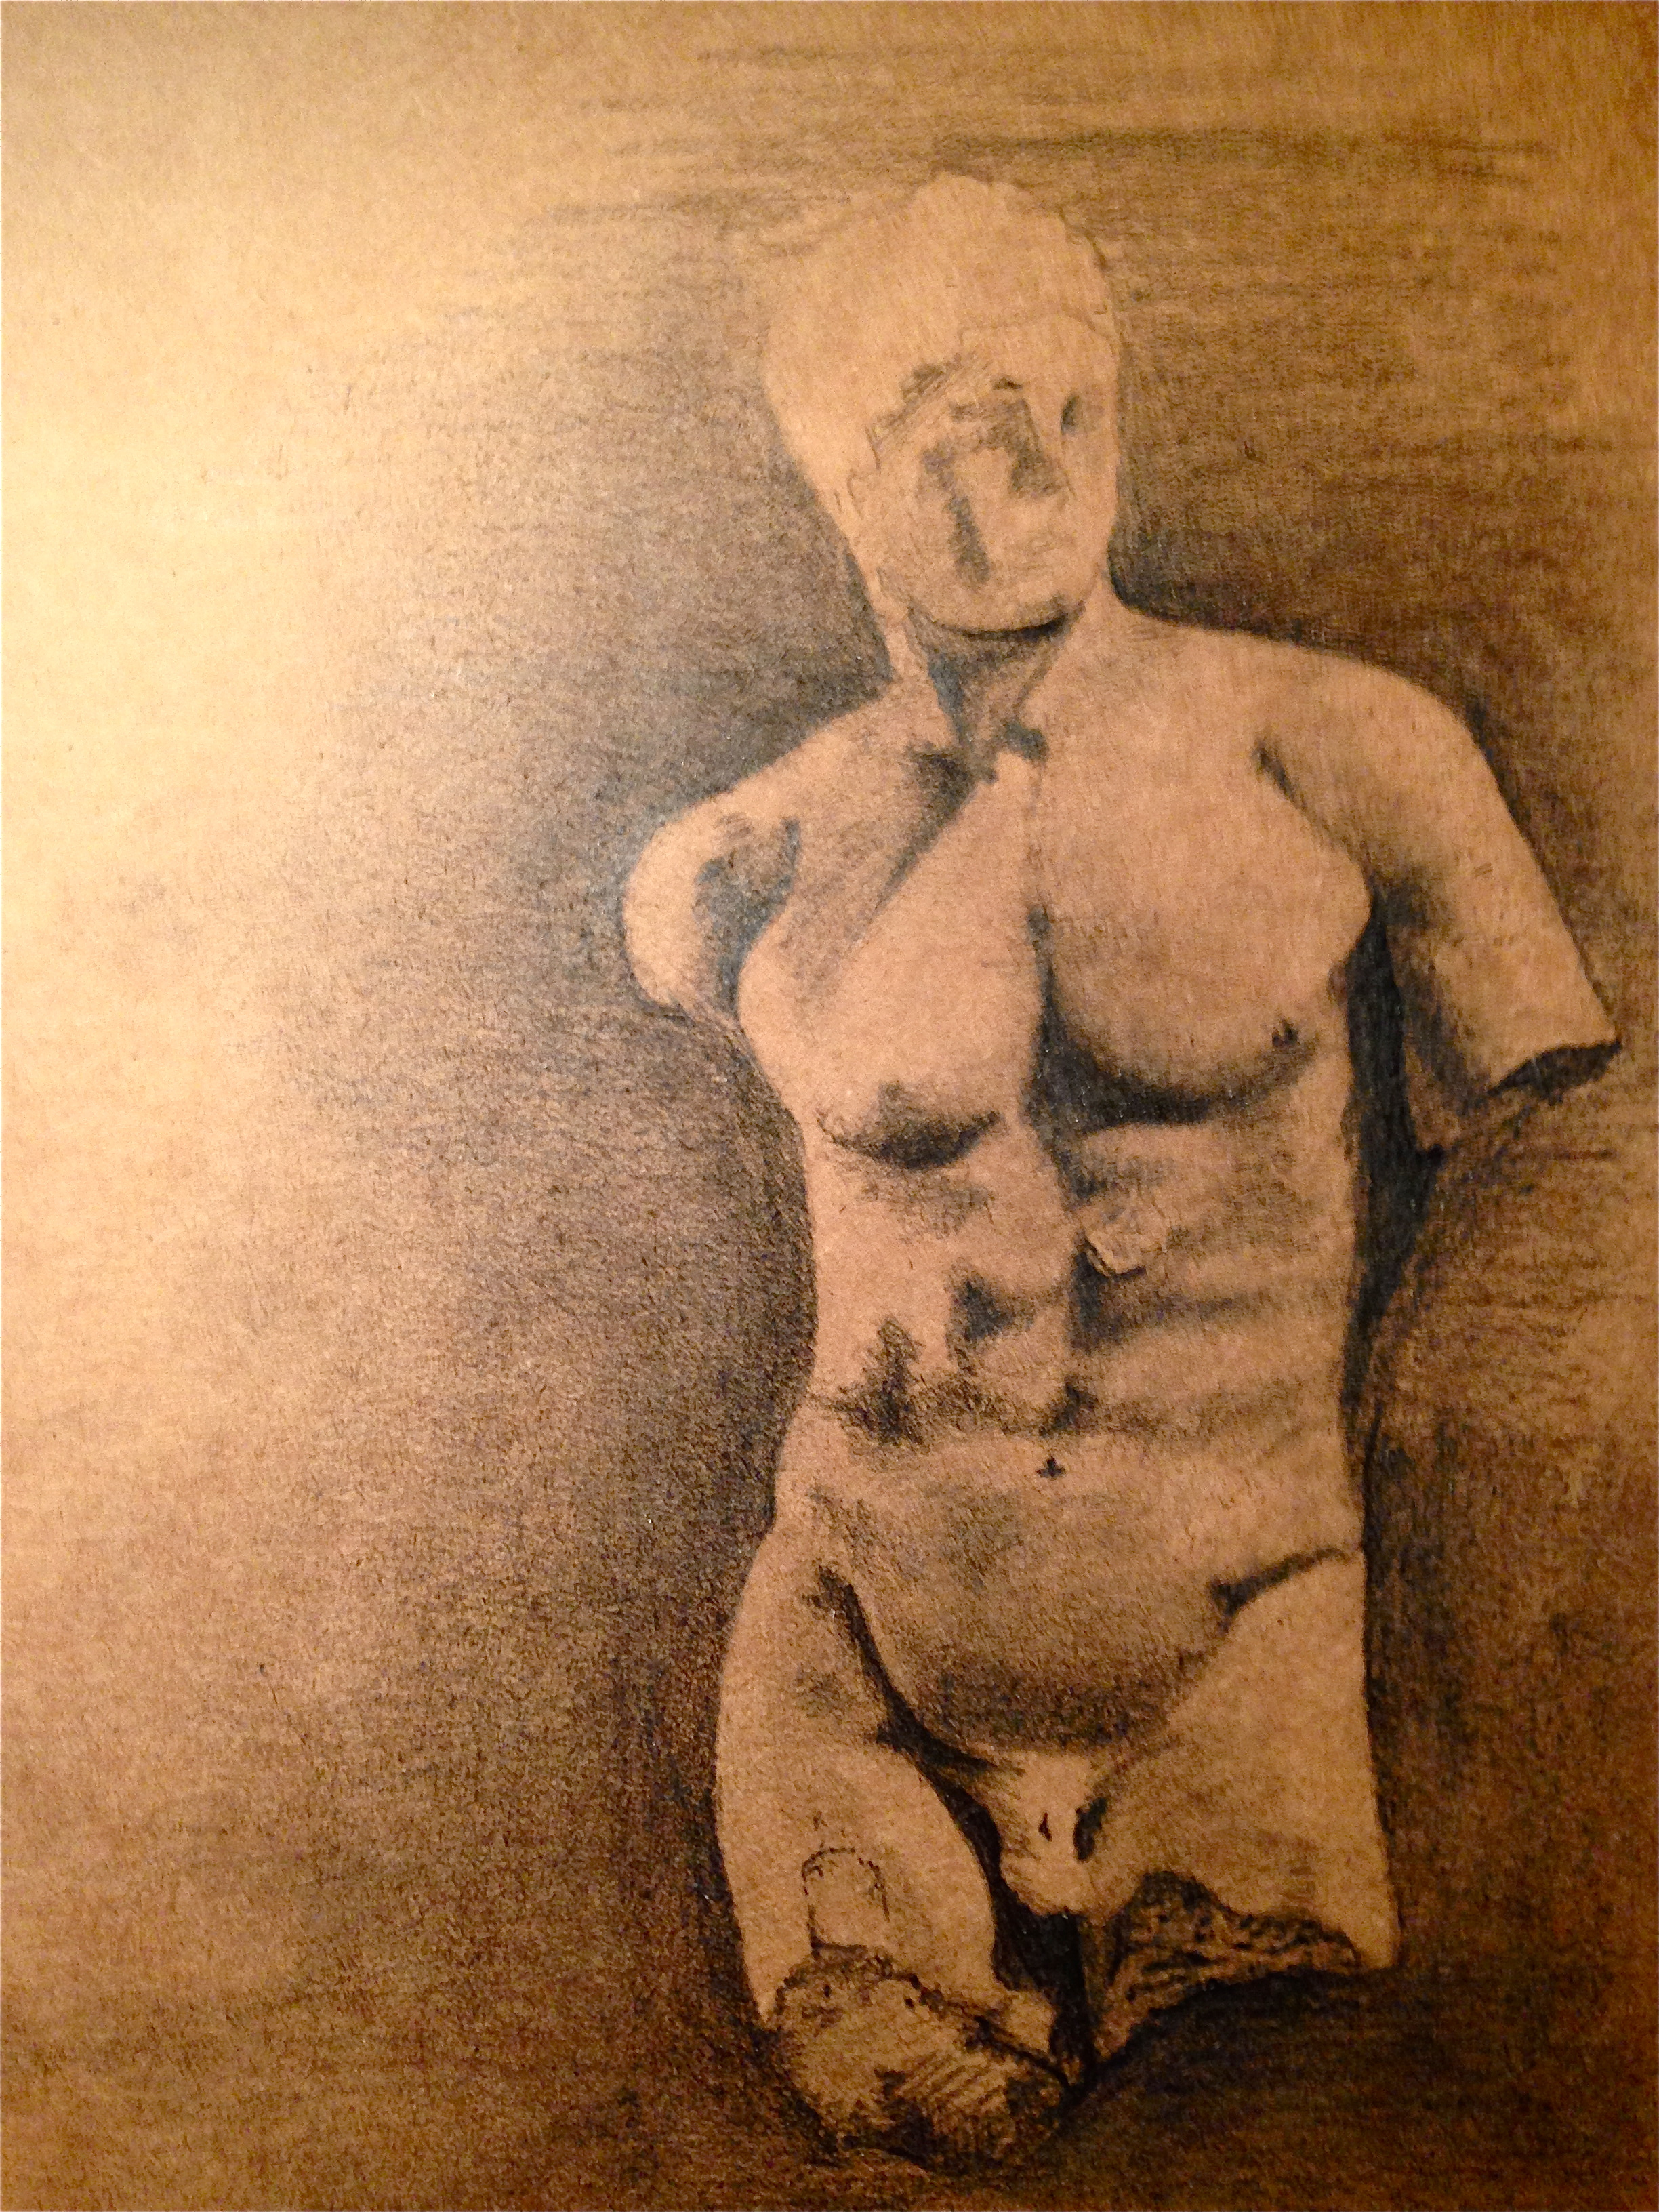 Sketch of an original Greek sculpture